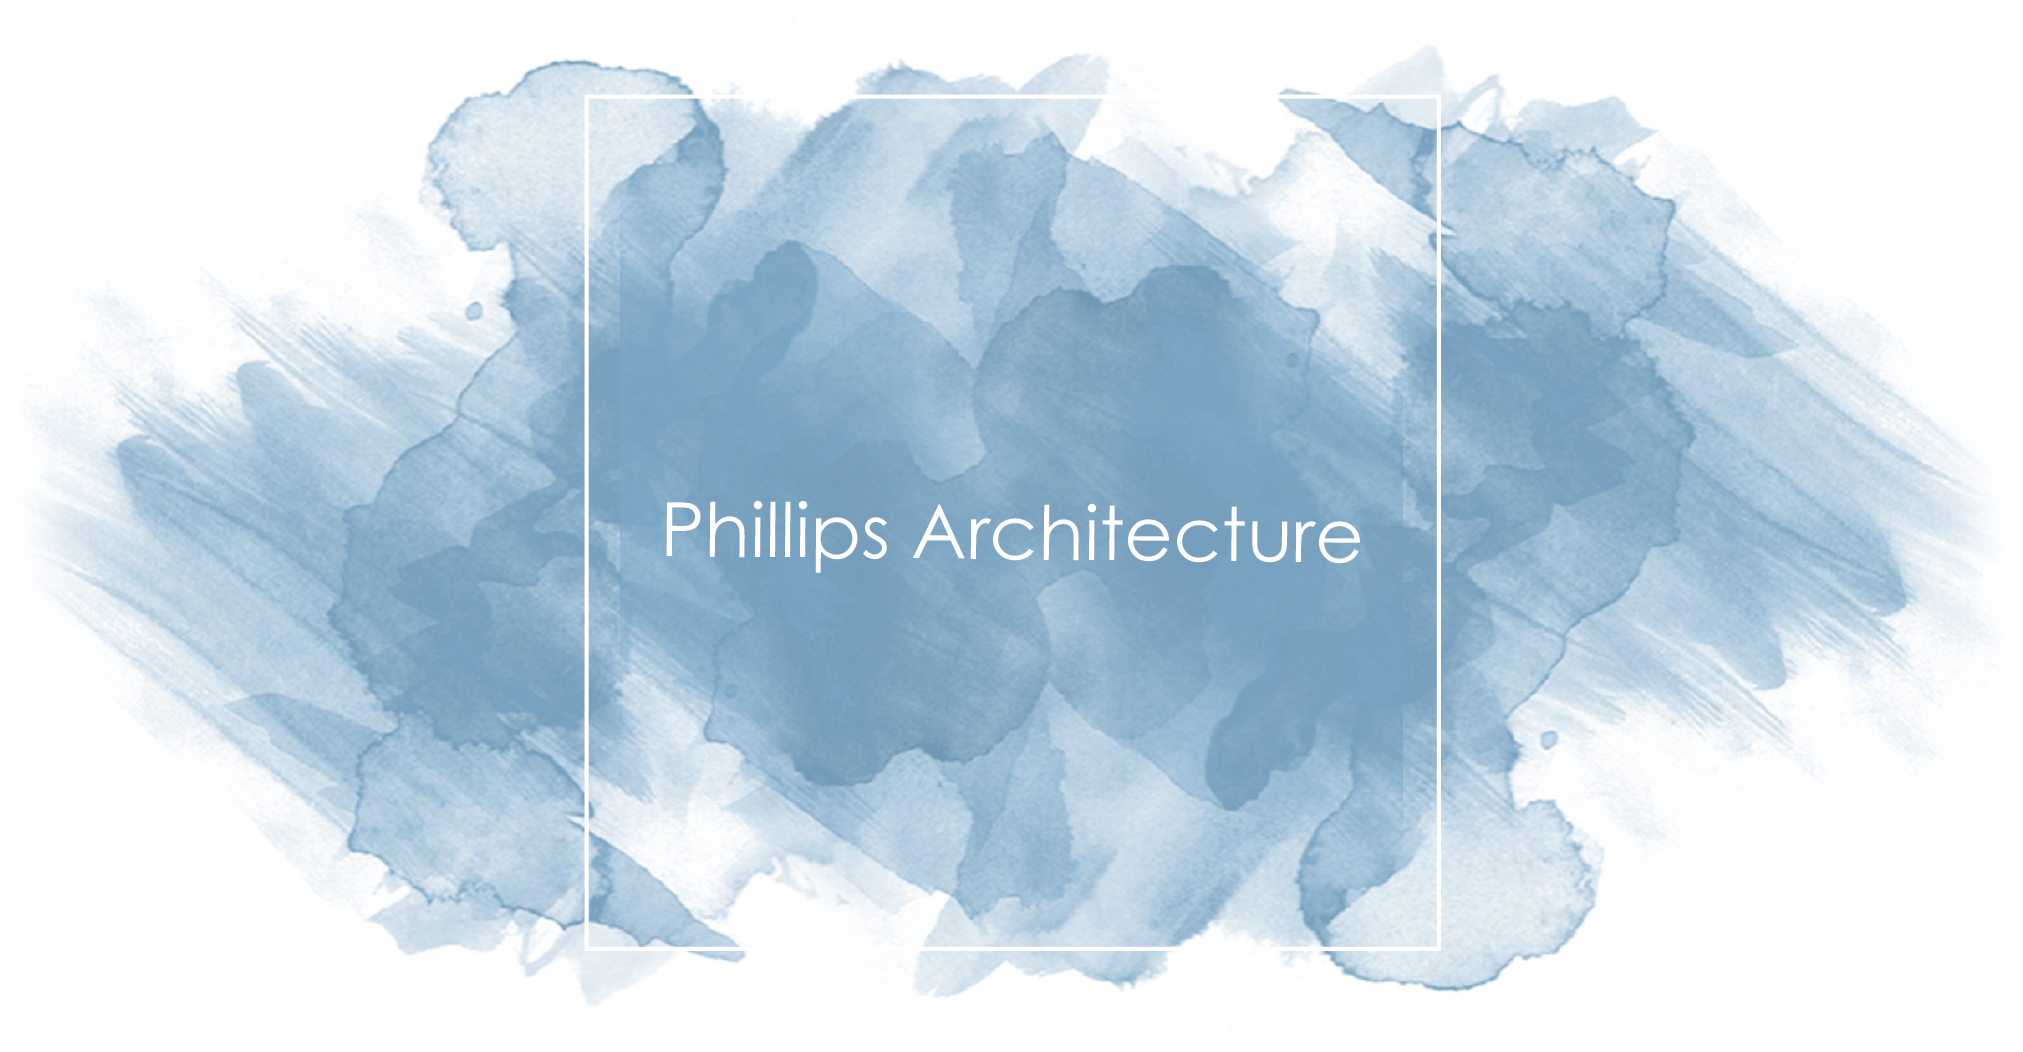 Phillips arch website images.png